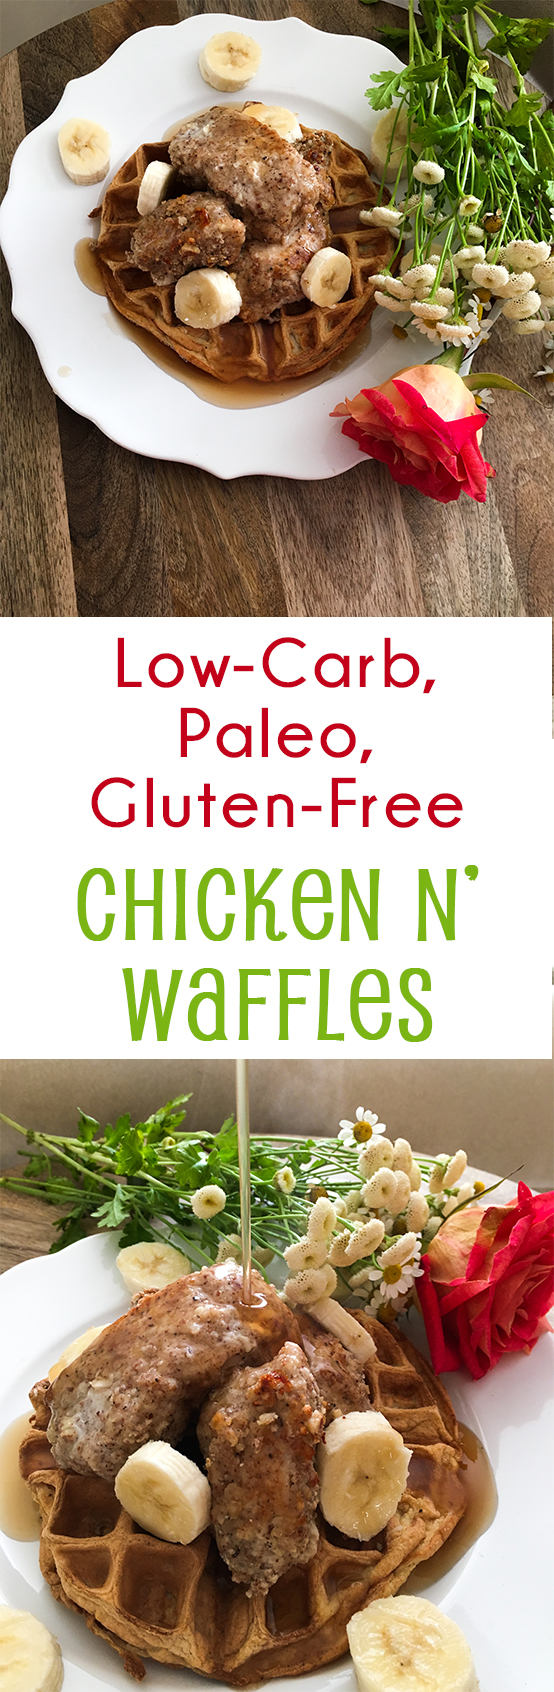 Paleo, Low Carb, Gluten Free Chicken n Waffles pinterest